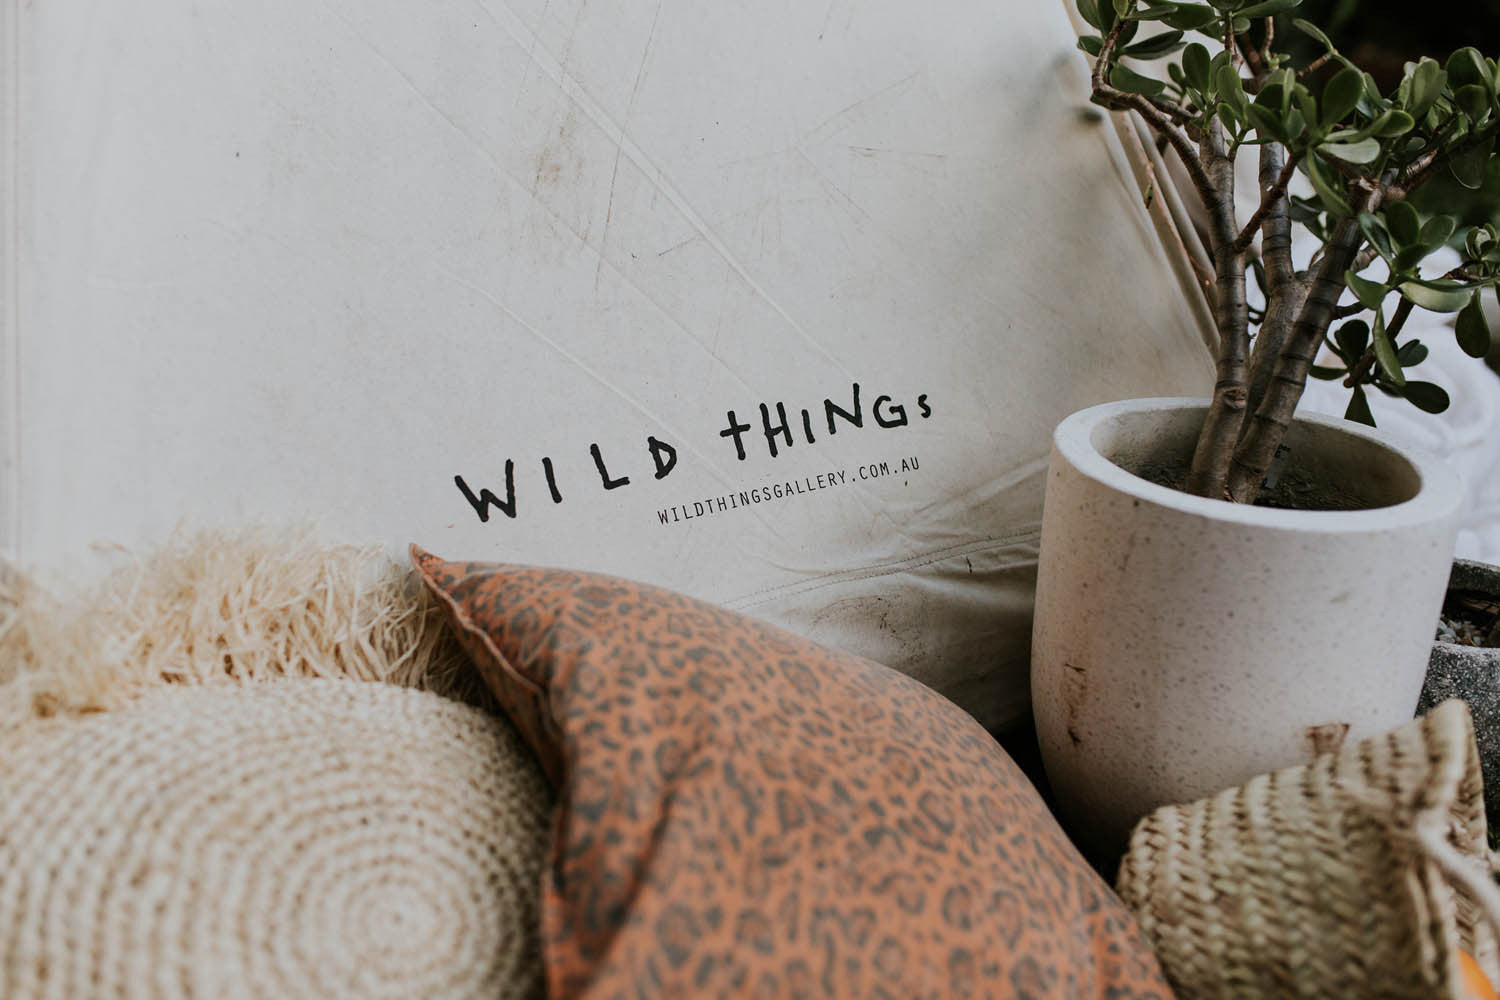 Teepee by Wildthings